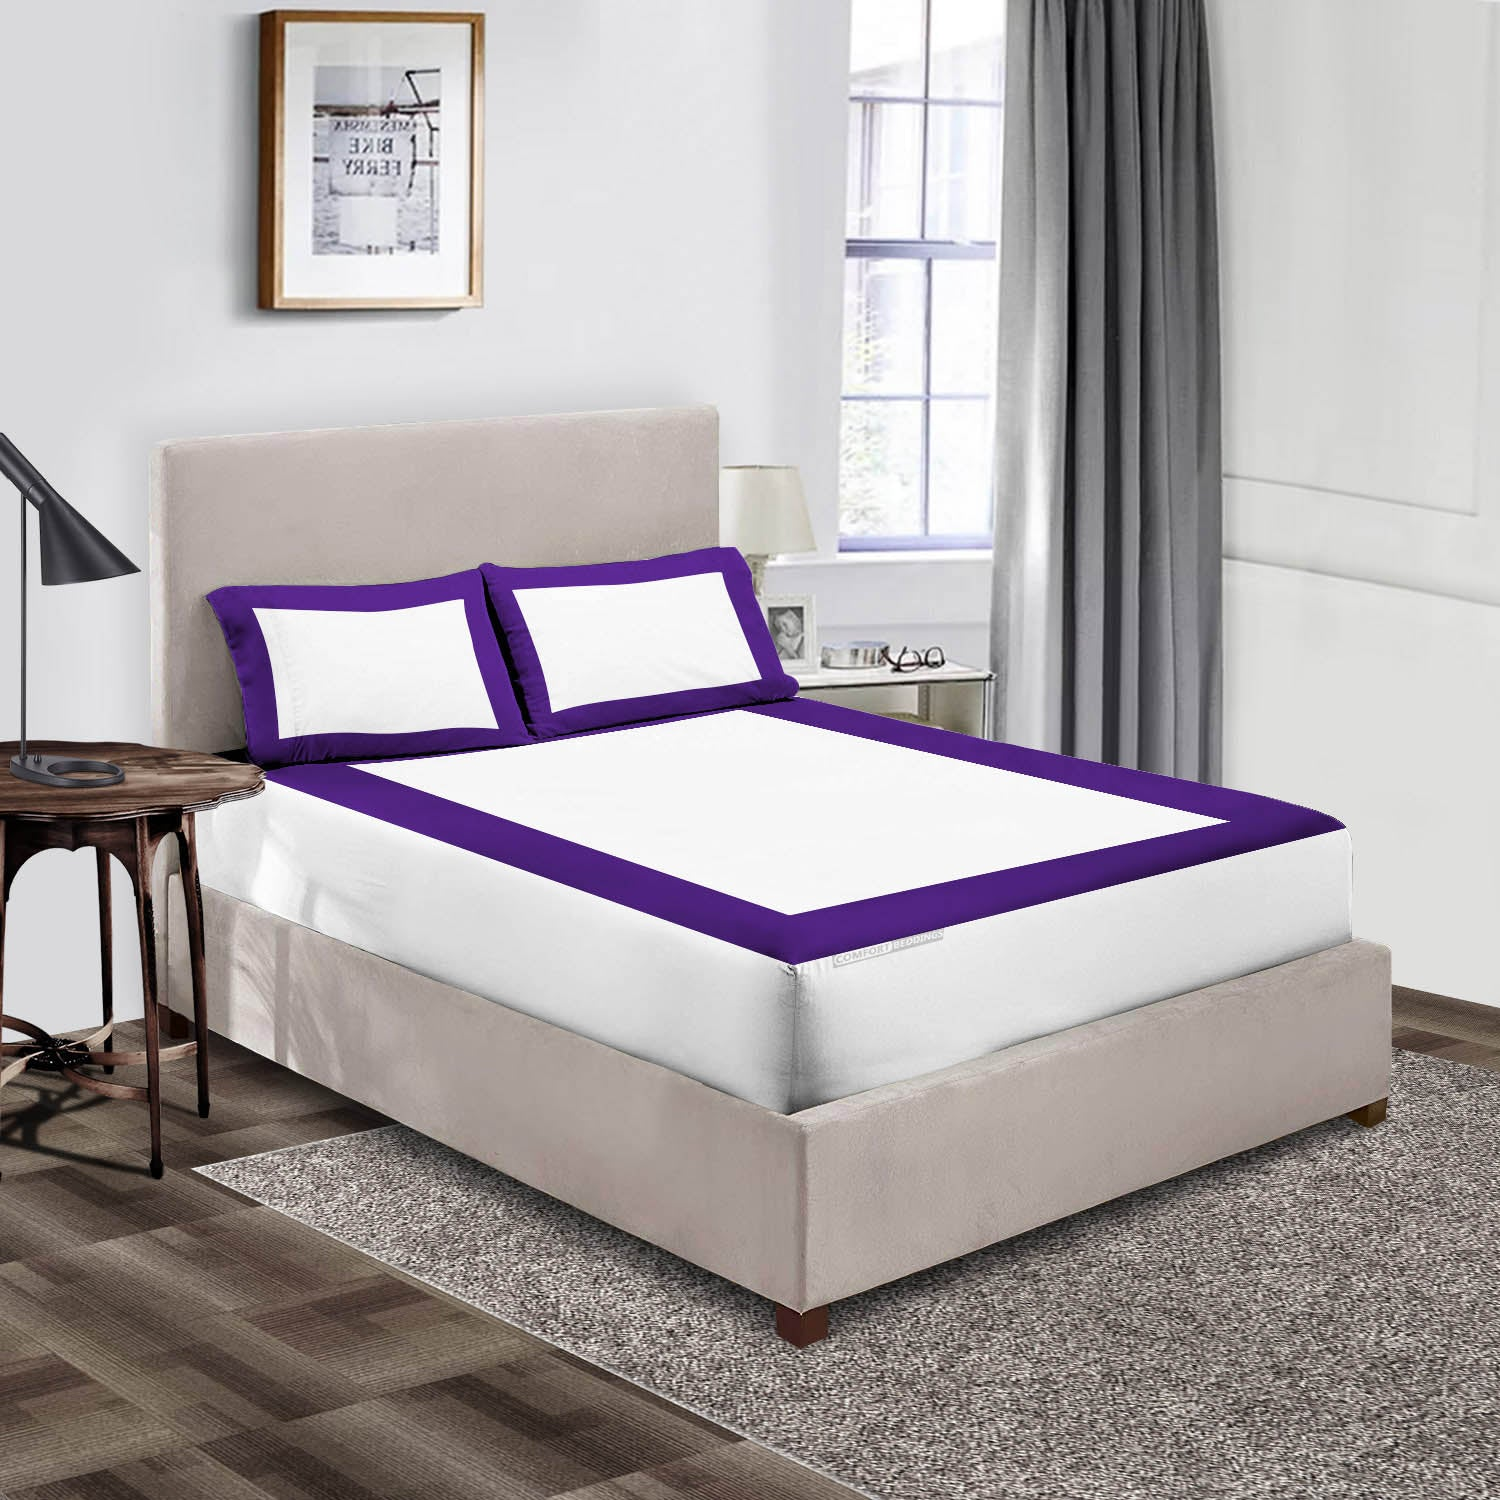 Luxury Purple - white two tone fitted sheets